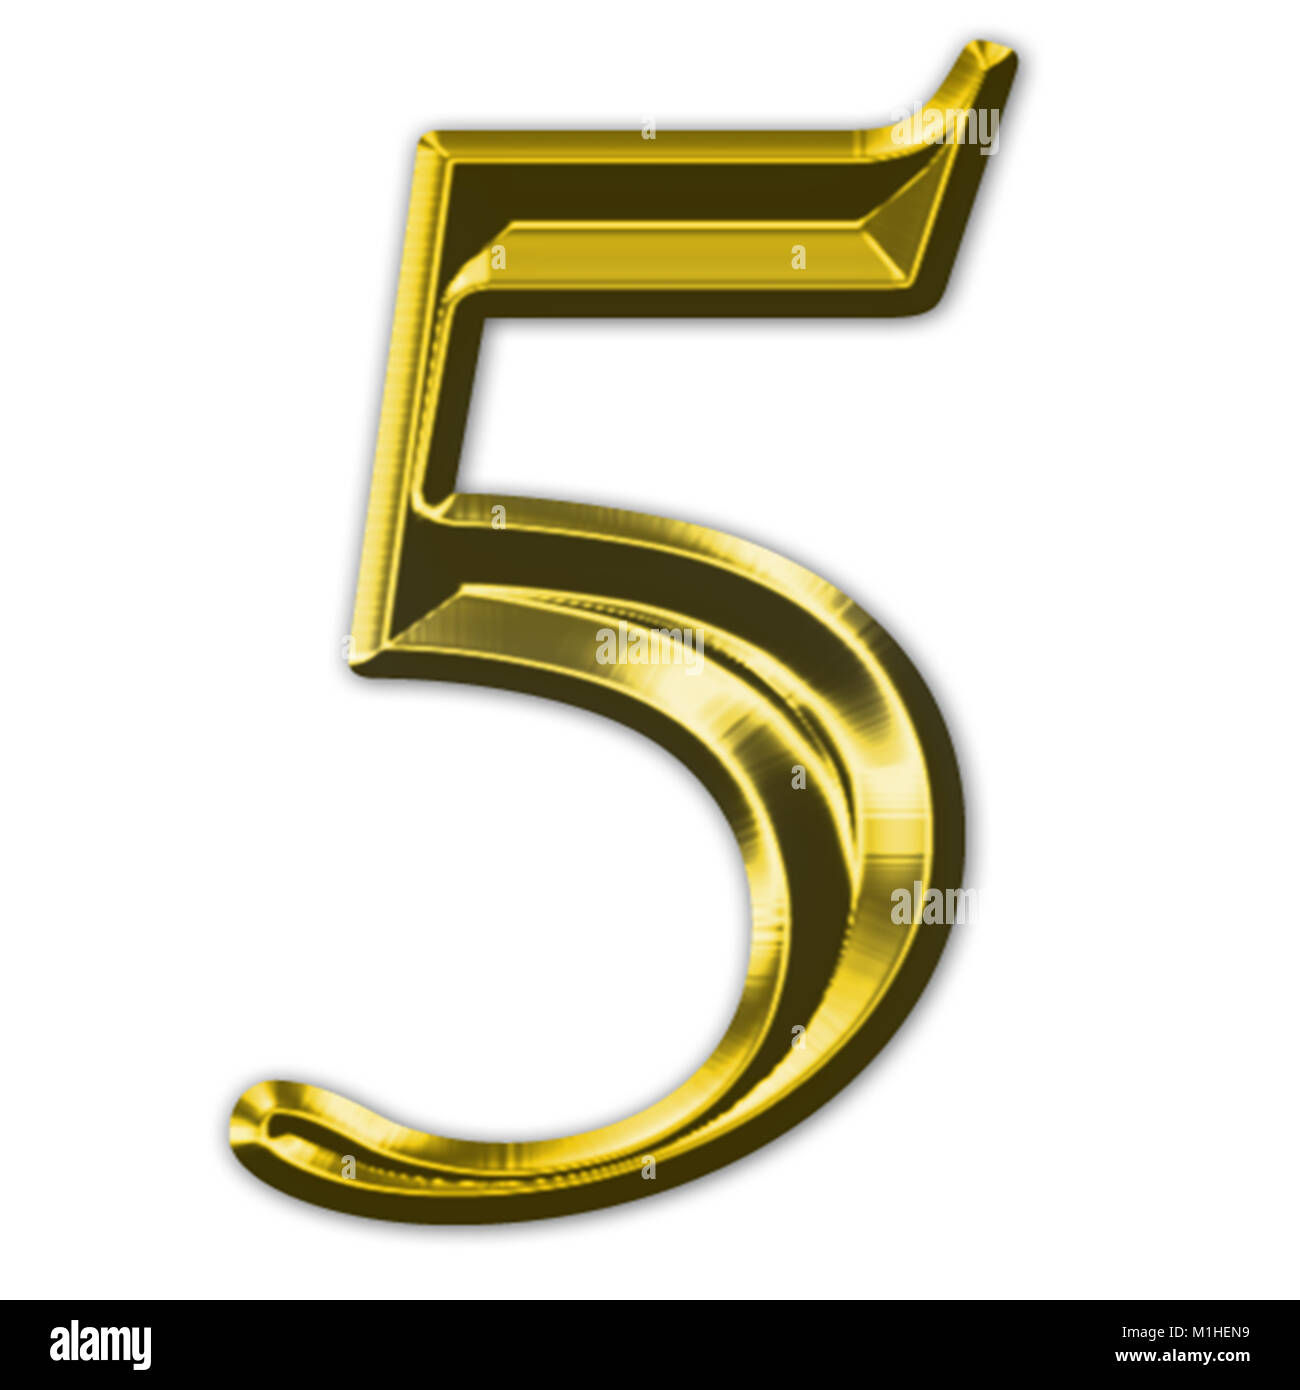 Rendering of a gold beveled numeral - Stock Image